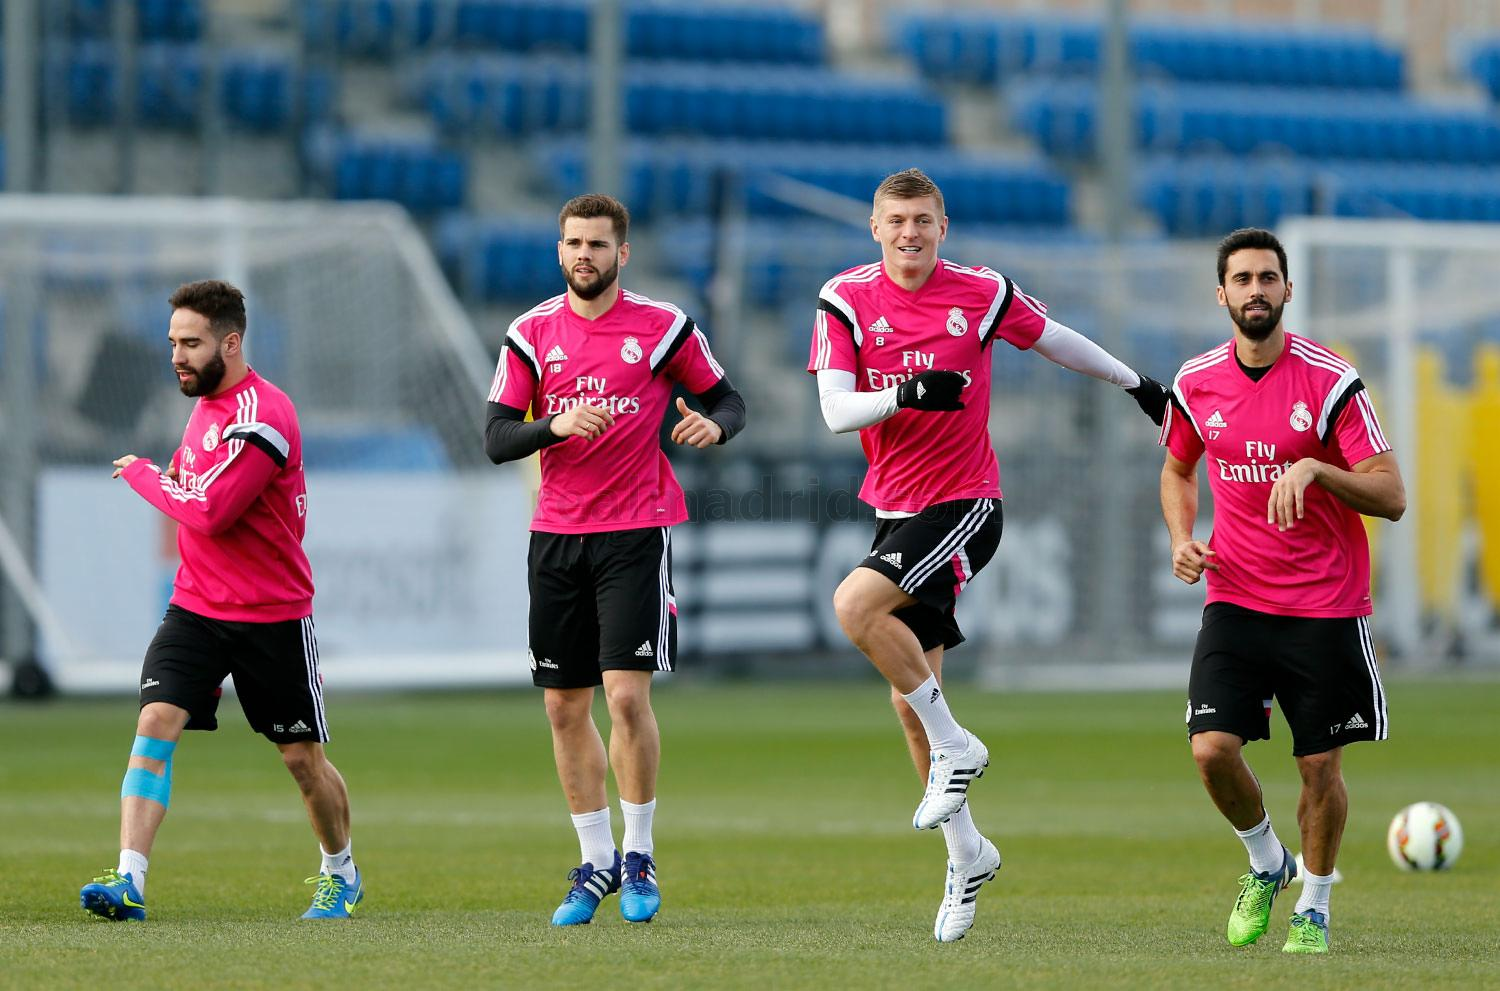 Real Madrid - Entrenamiento del Real Madrid - 26-02-2015